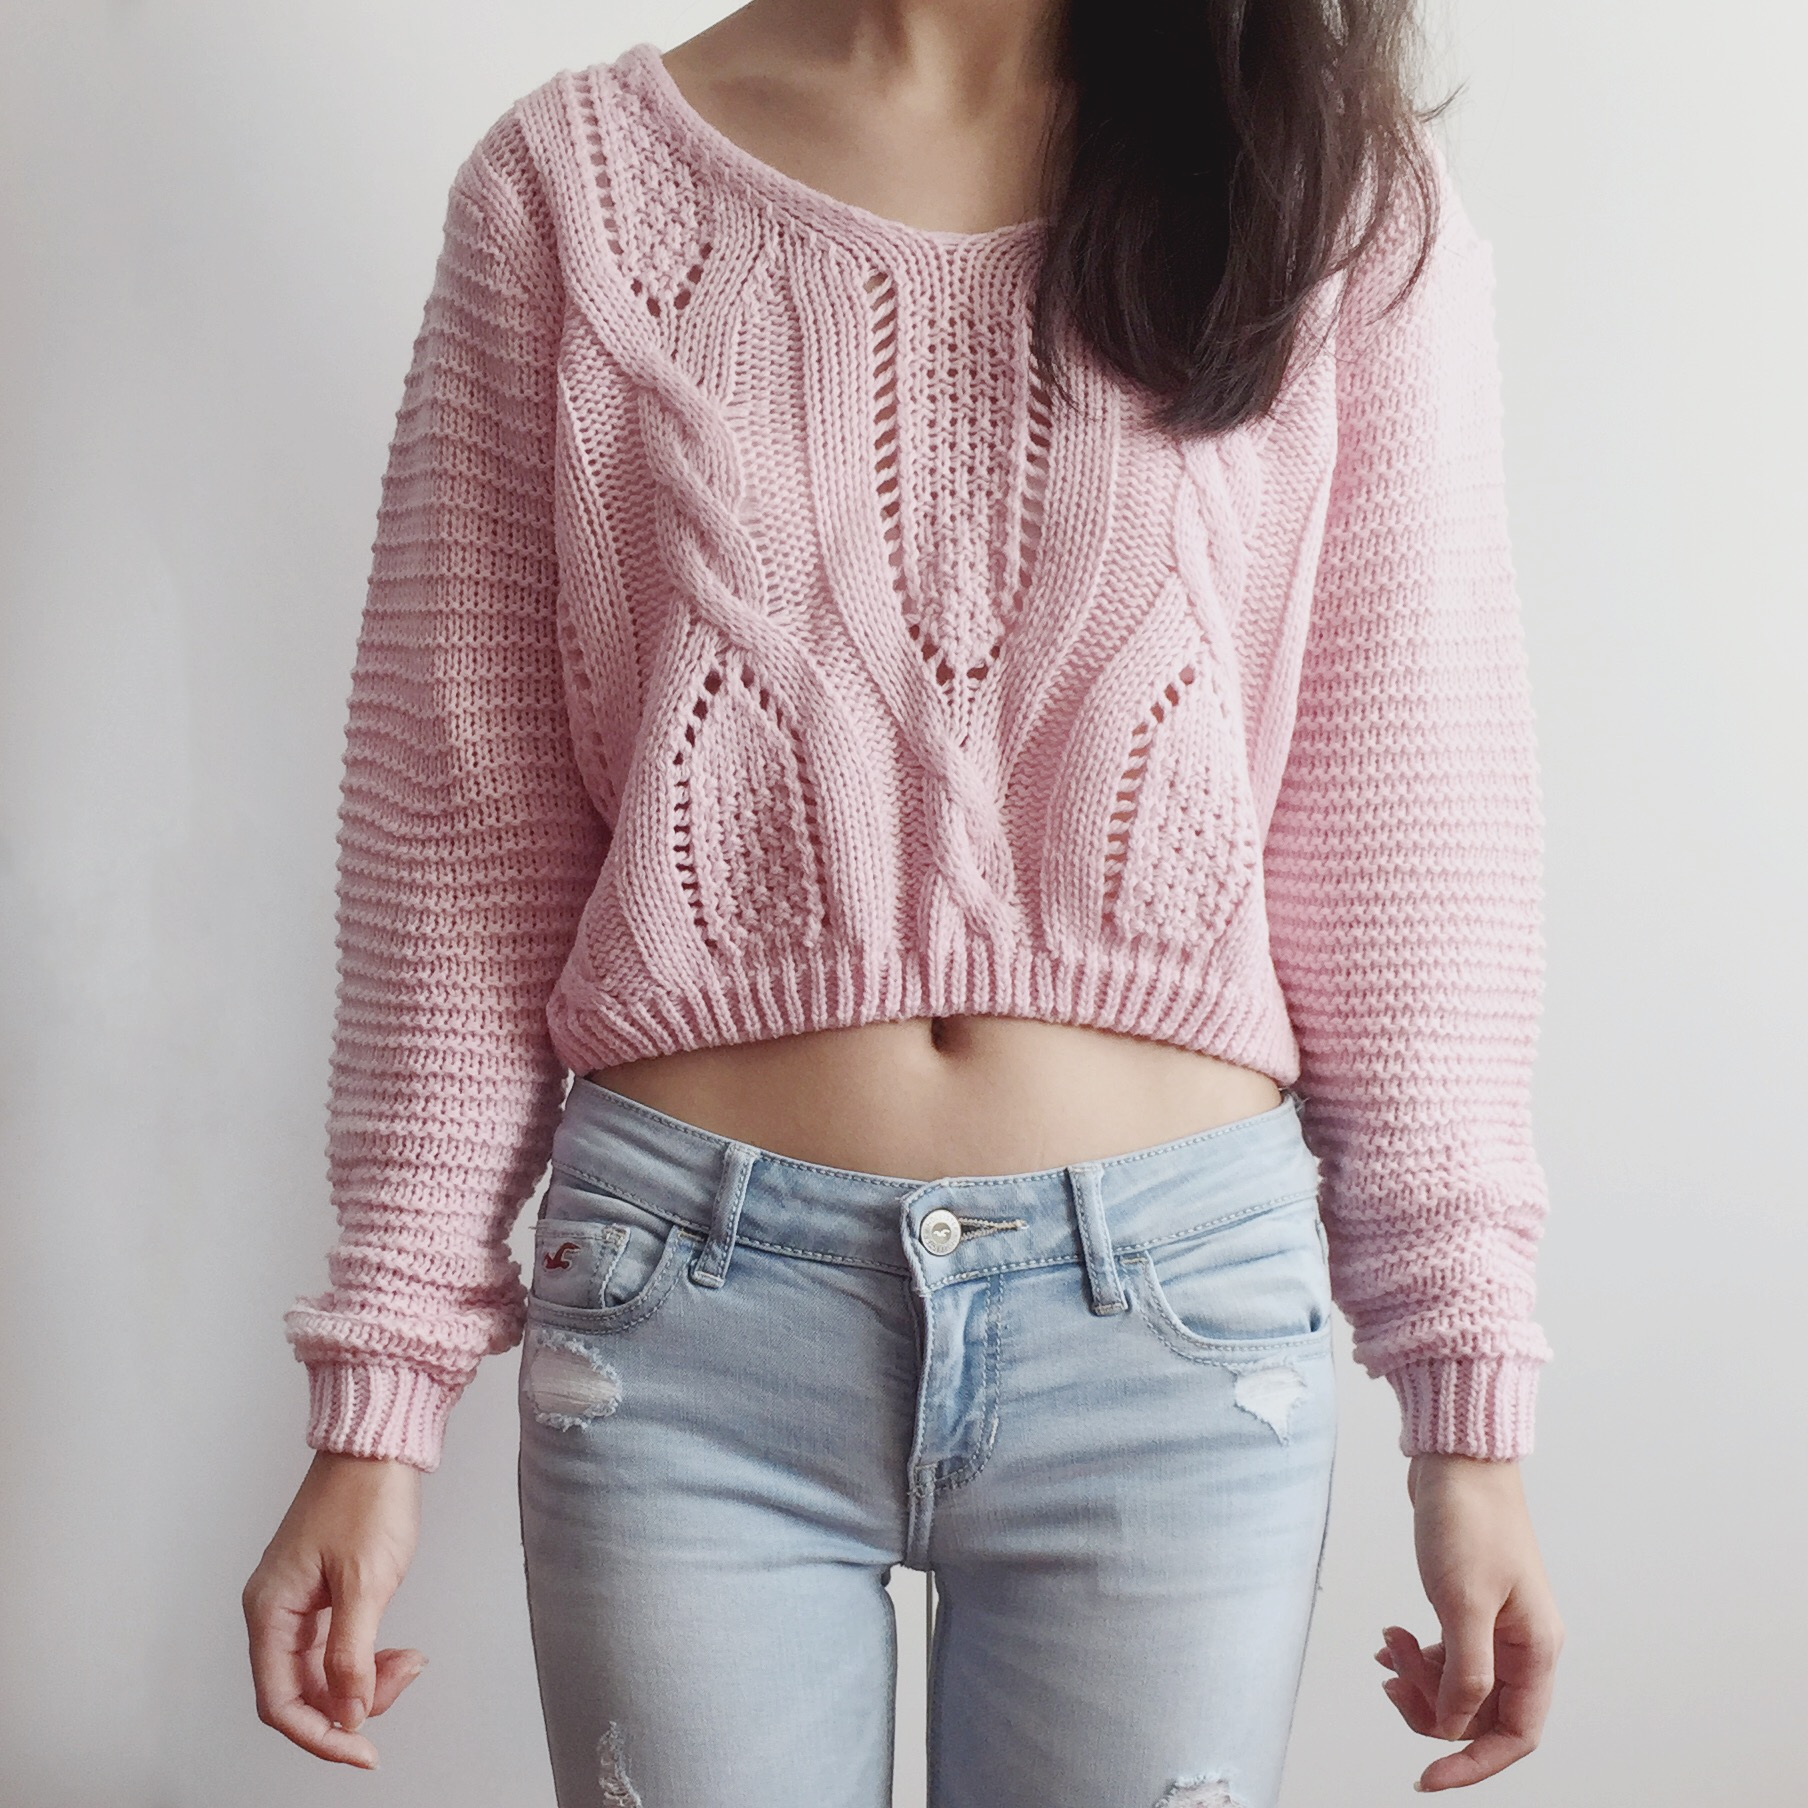 Lace Up Back Cropped Knit Sweater (Pink) · Megoosta Fashion · Free ...